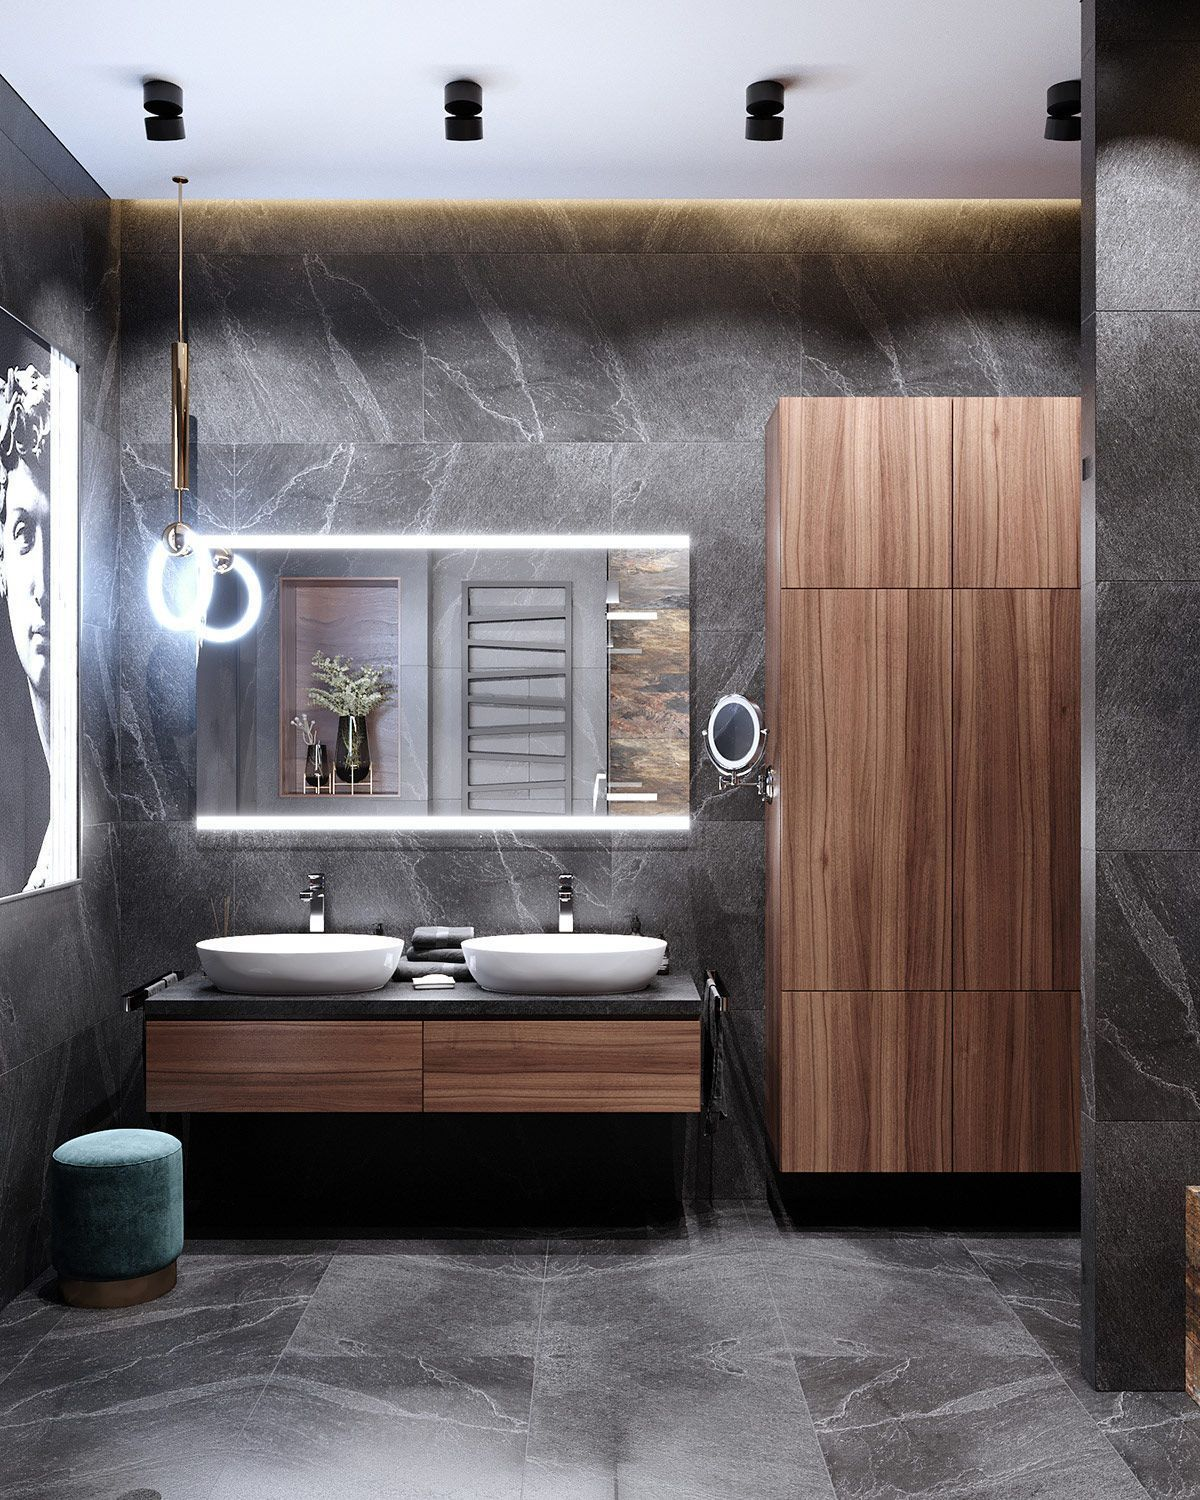 bathroom queen decor #bathroom decor and tiles albany #bathroom